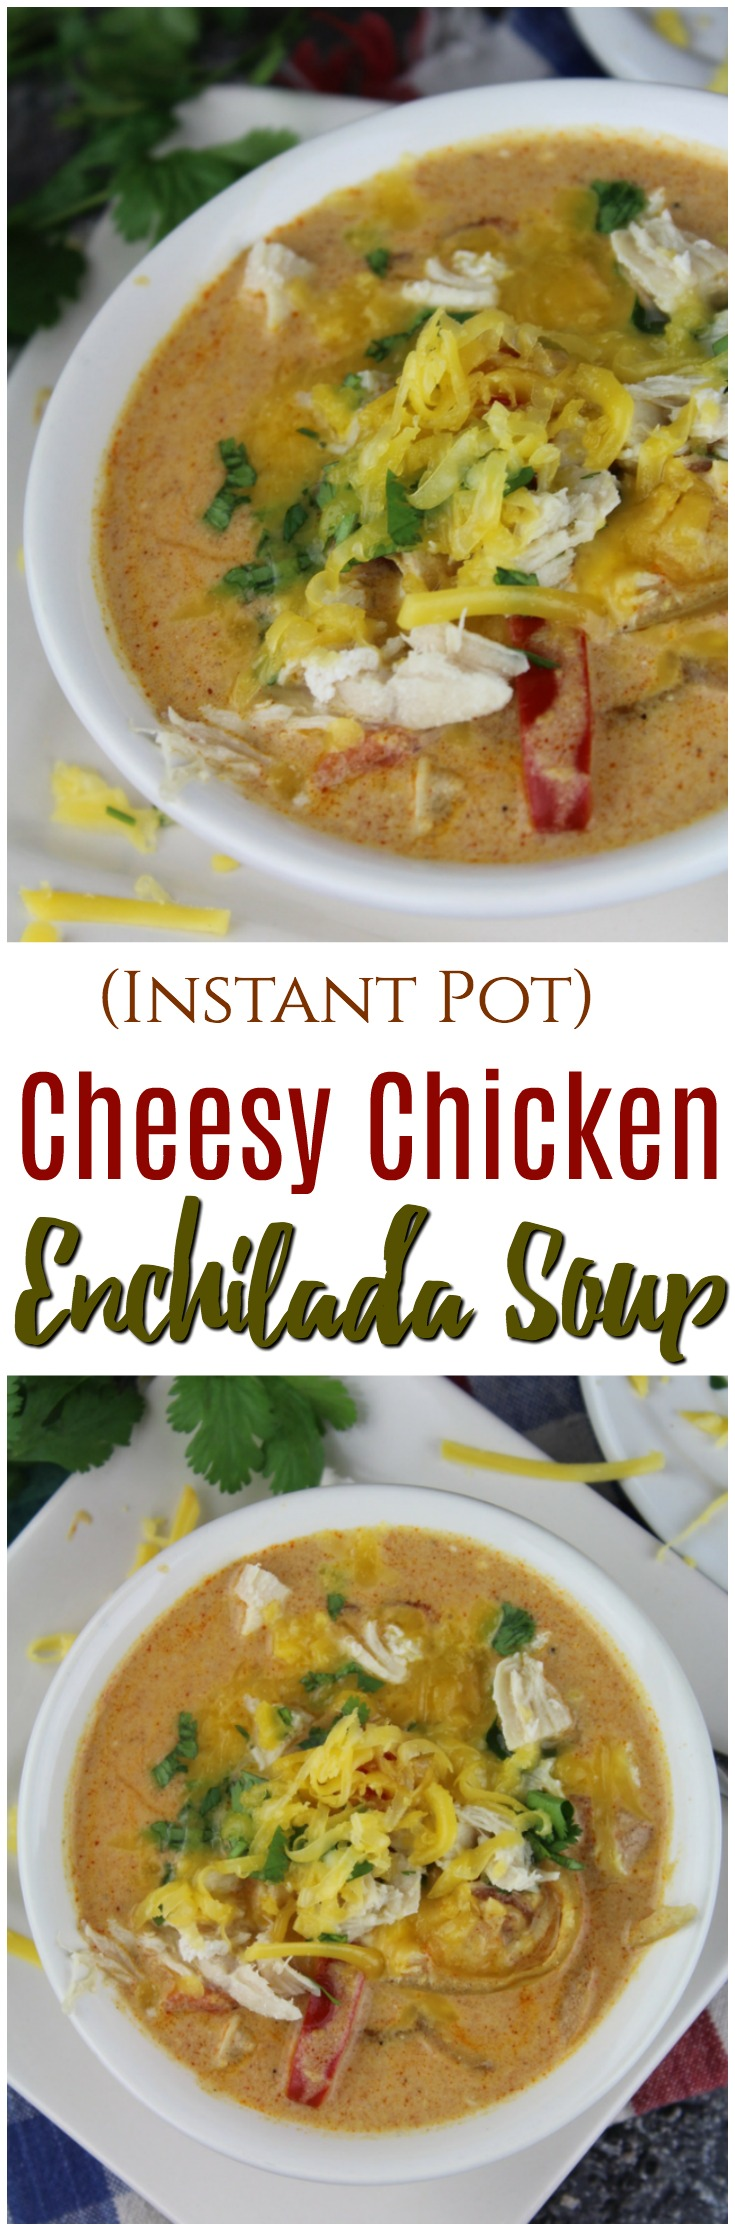 Your favorite enchilada flavors wrapped in the comfort of a deliciously yummy soup - easily made in your Instant Pot! #InstantPot #soup #chicken